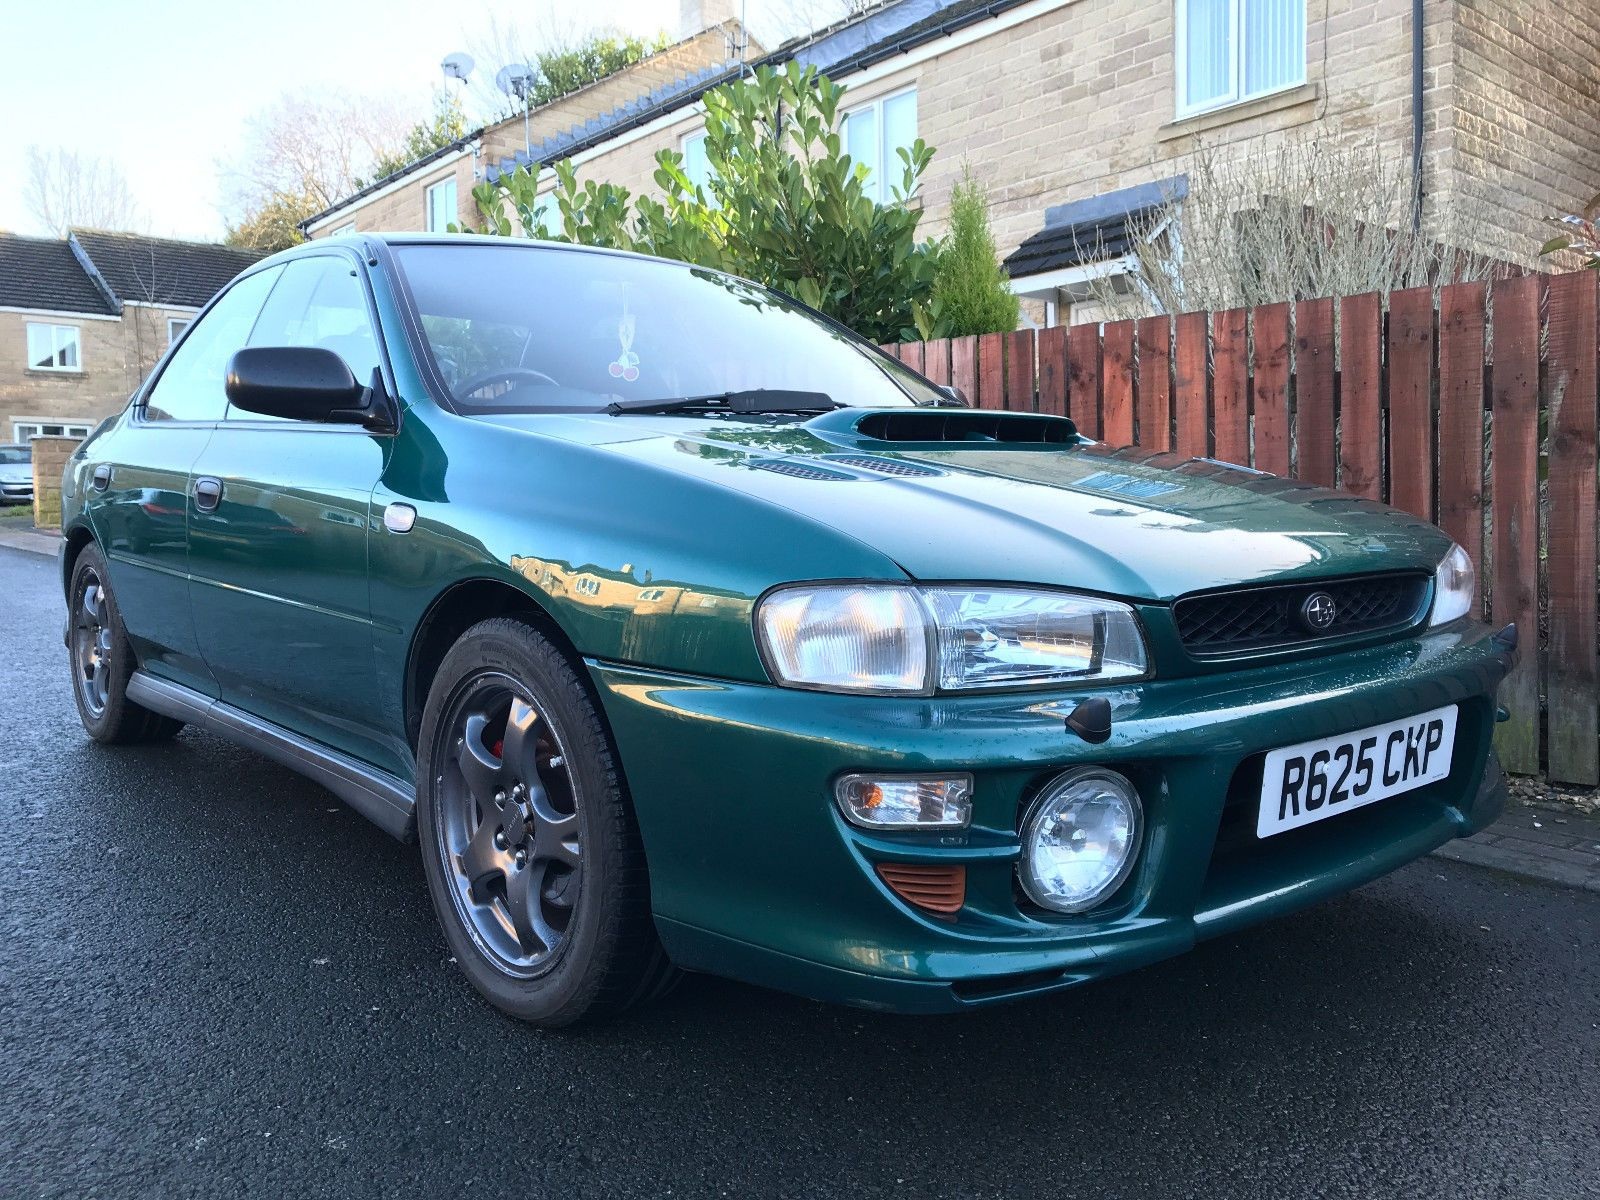 Looking For A 1998 R Subaru Impreza Uk 2000 Turbo Awd Saloon British Green Wrx Sti Rs Px Swap This One Is On Ebay Subaru Subaru Impreza Impreza